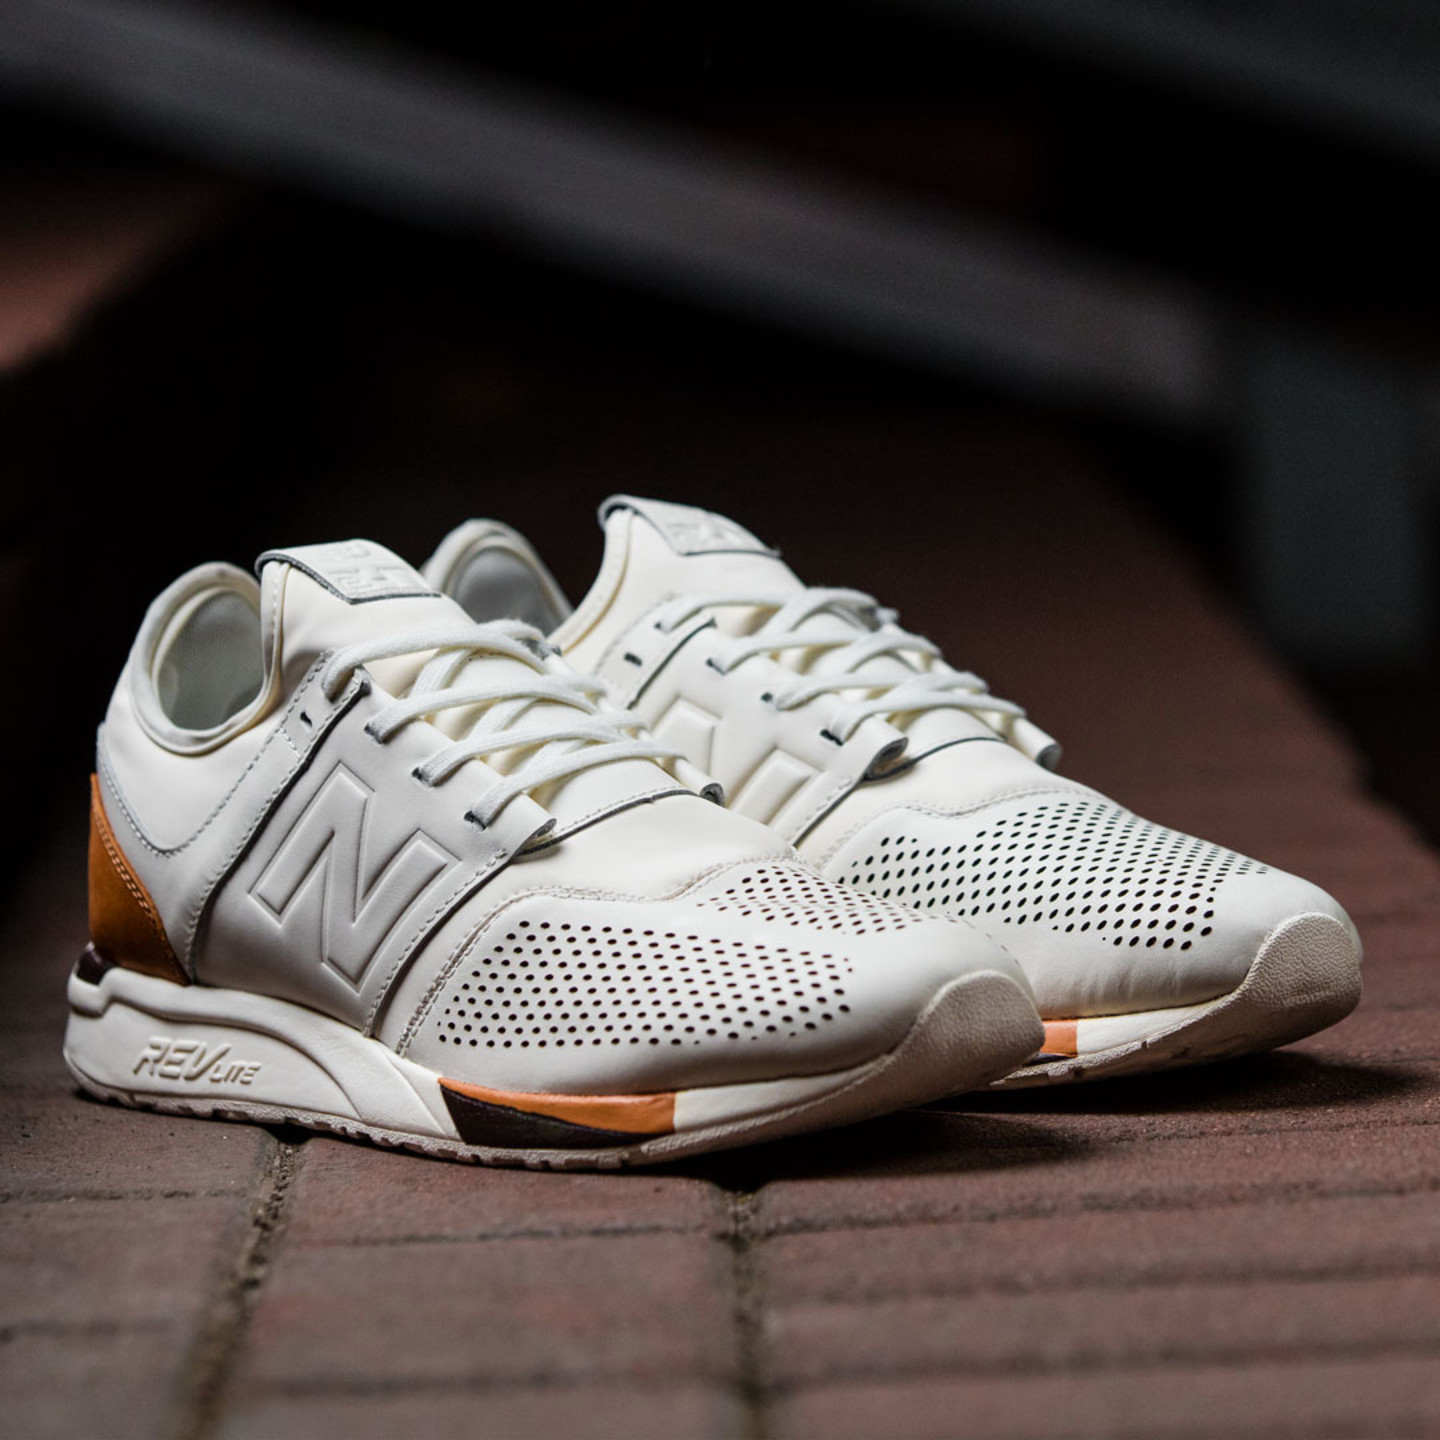 New Balance MRL 247 'Luxe Pack' Off White / Brown MRL247BE-46.5